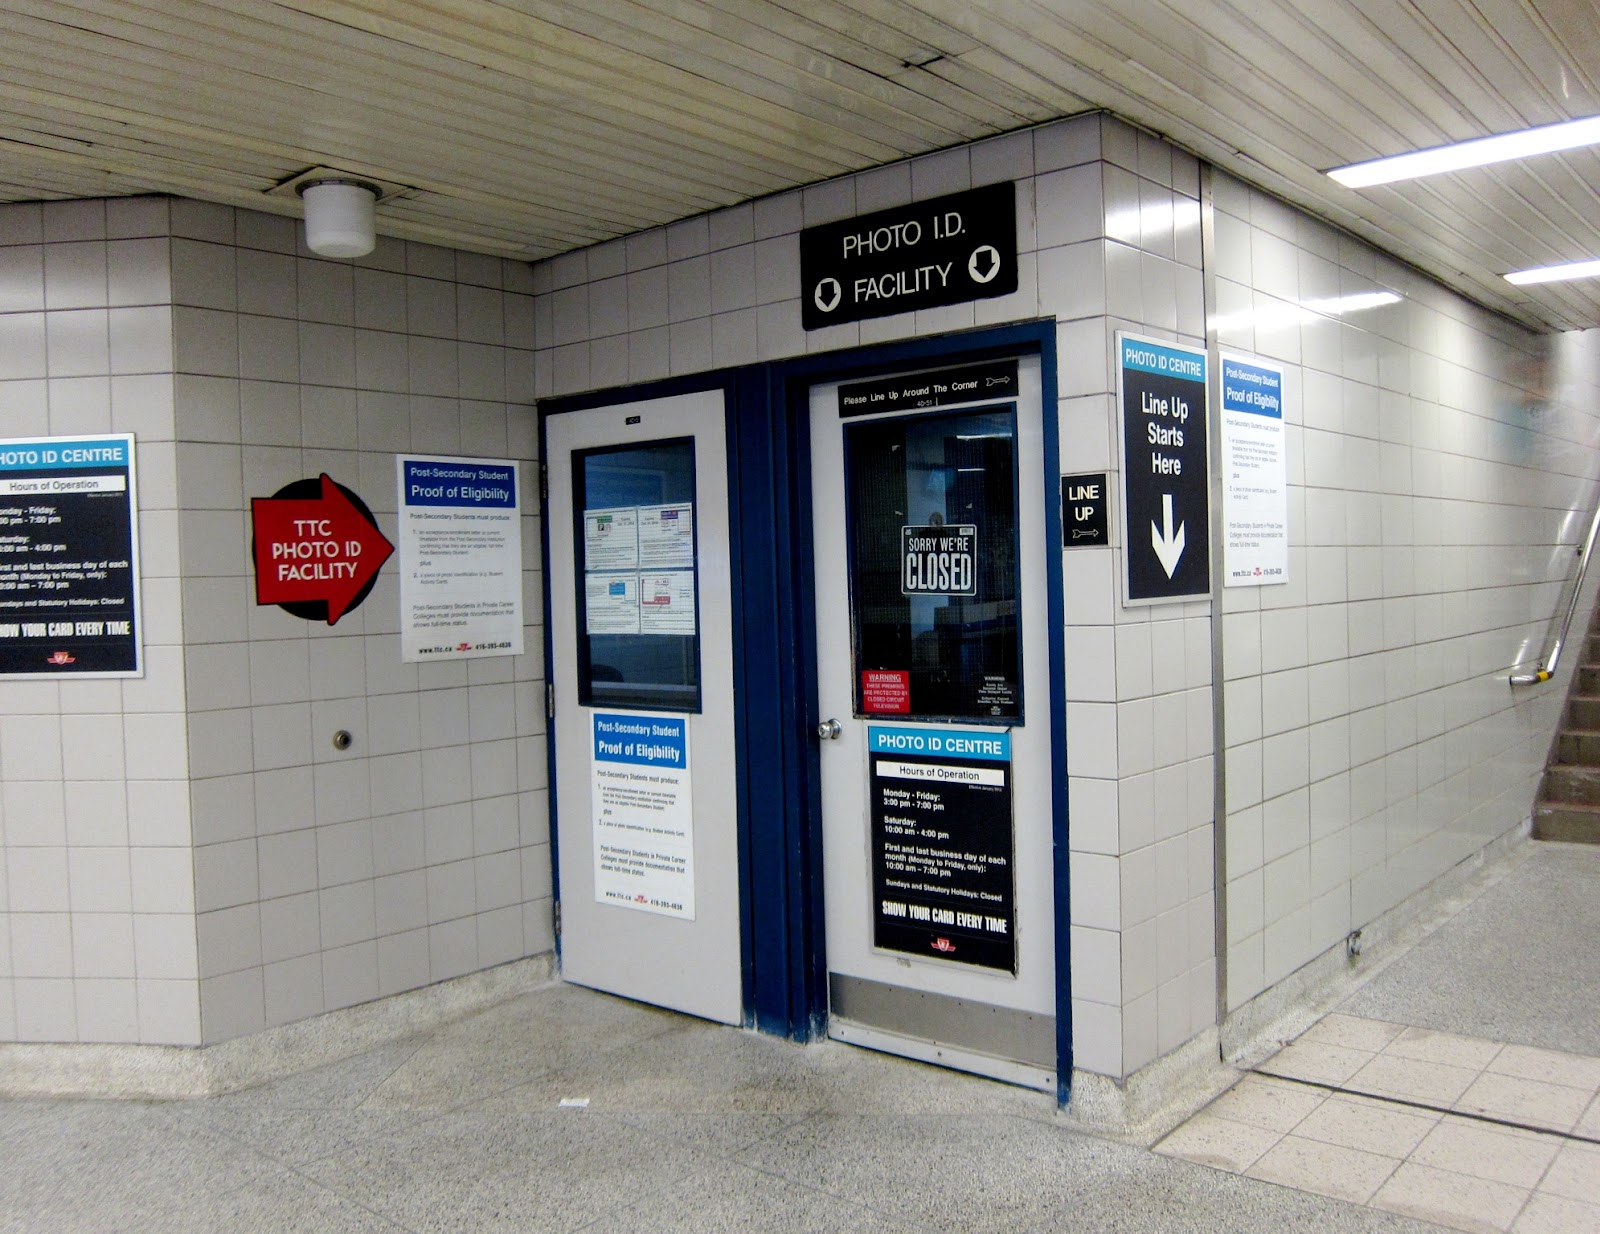 Photo ID facility at Sherbourne station